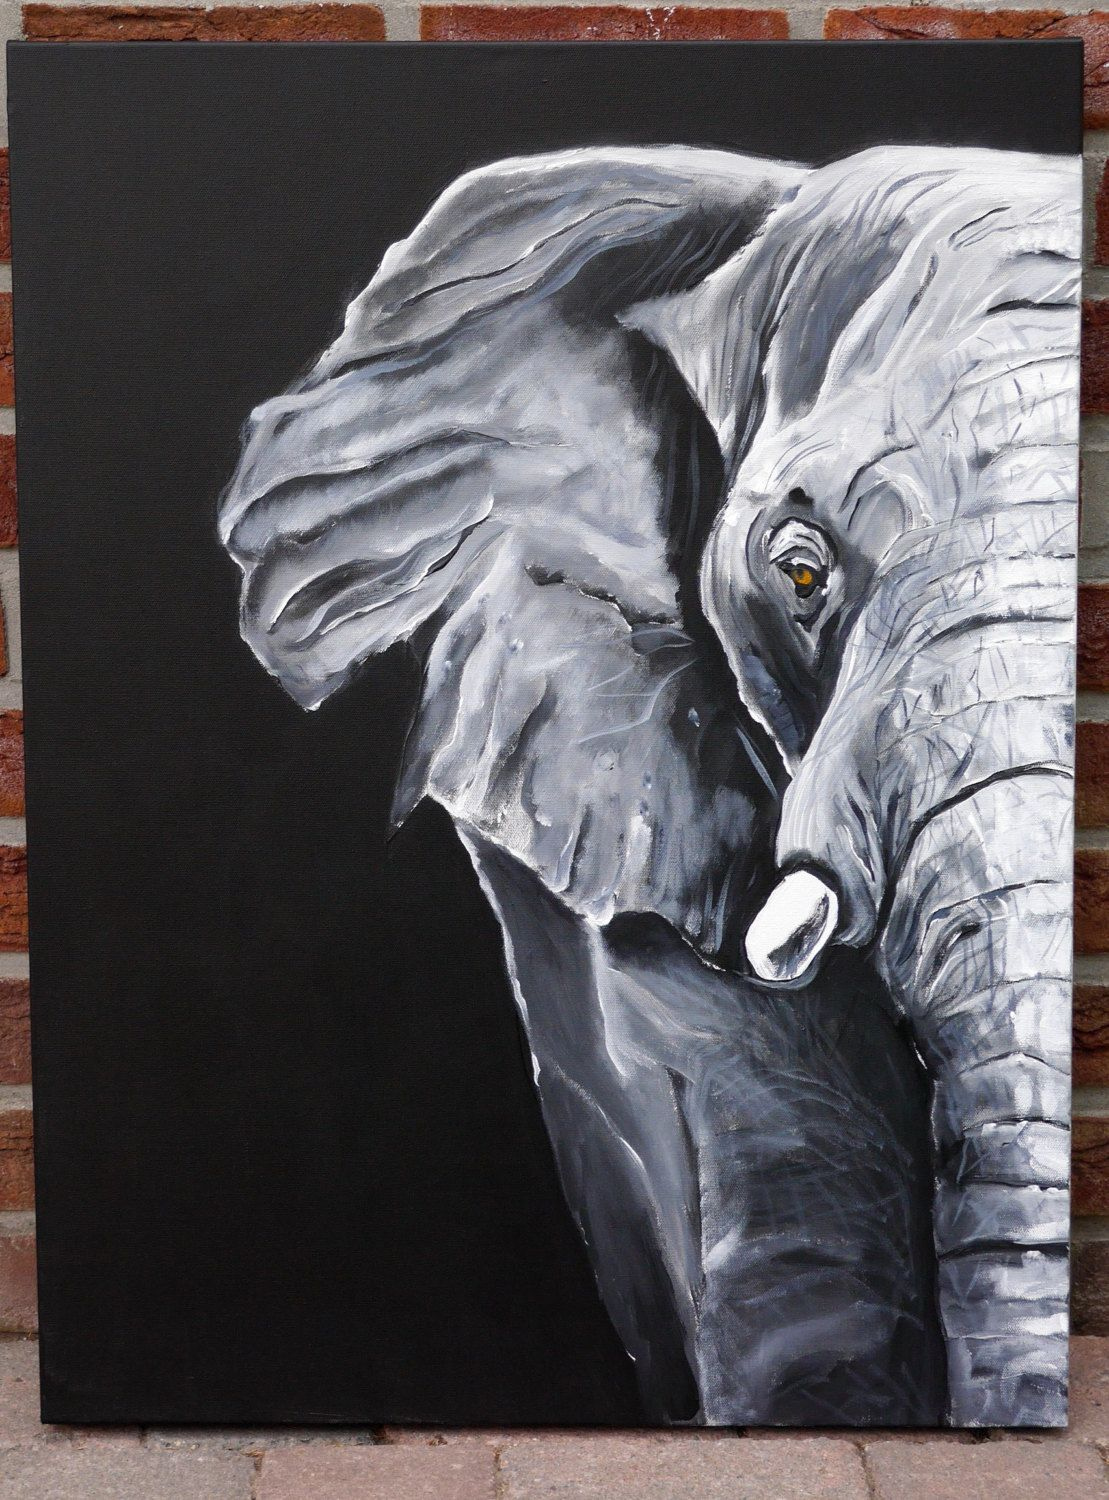 Medium acrylic painting black white schwarzweiss grau grey africajungle afrikadschungel animalelephantelefant by beate frieling by colorbybeate